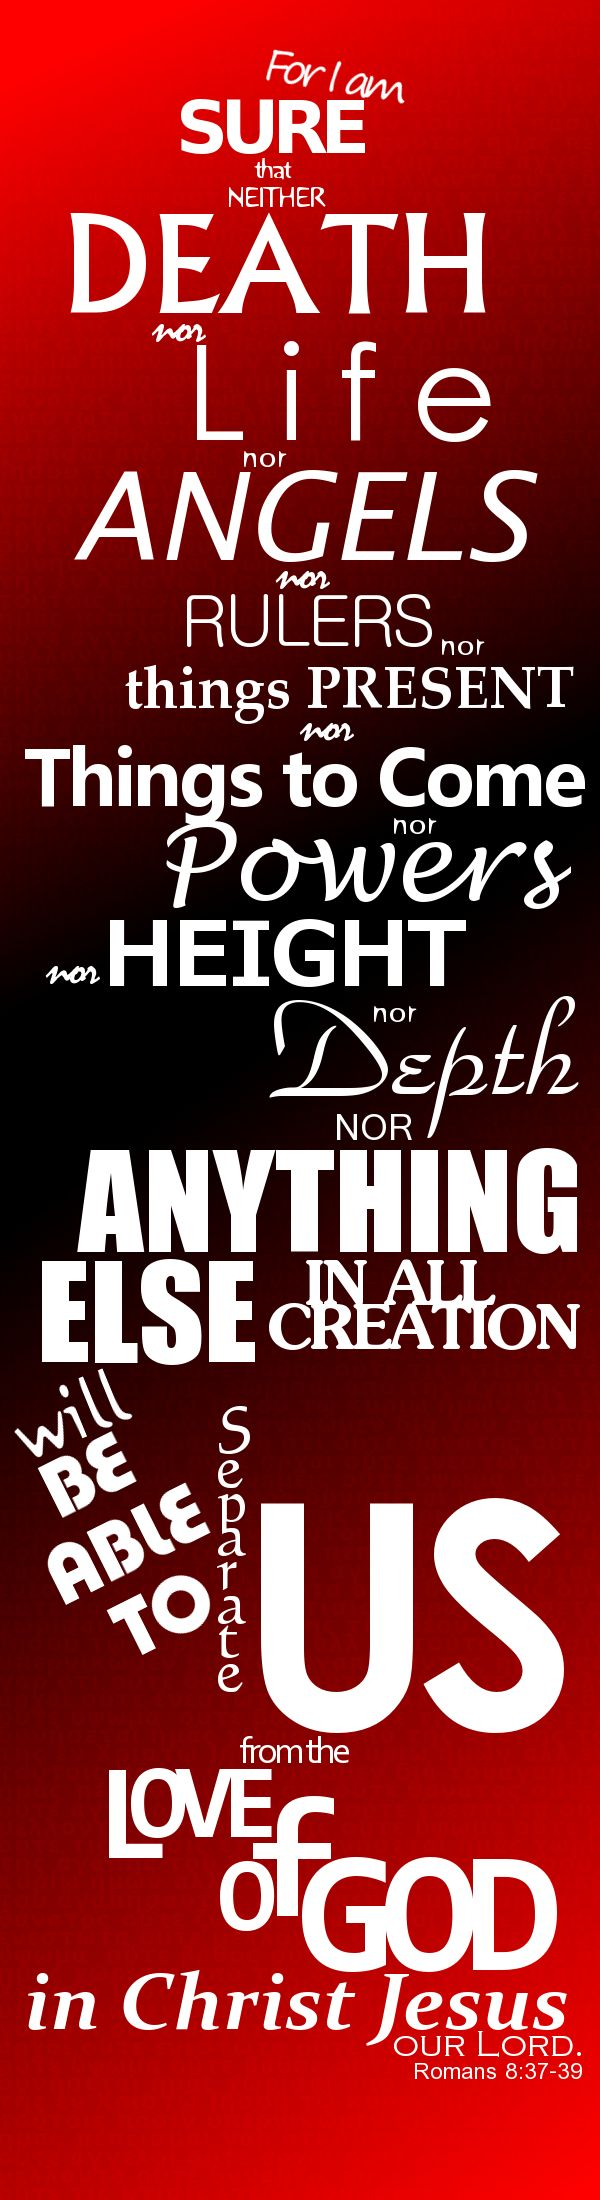 "Romans 8:37-39 ""Yet in all these things we are more than conquerors through Him who loved us. 38 For I am persuaded that neither death nor life, nor angels nor principalities nor powers, nor things present nor things to come, 39 nor height nor depth, nor any other created thing, shall be able to separate us from the love of God which is in Christ Jesus our Lord."""